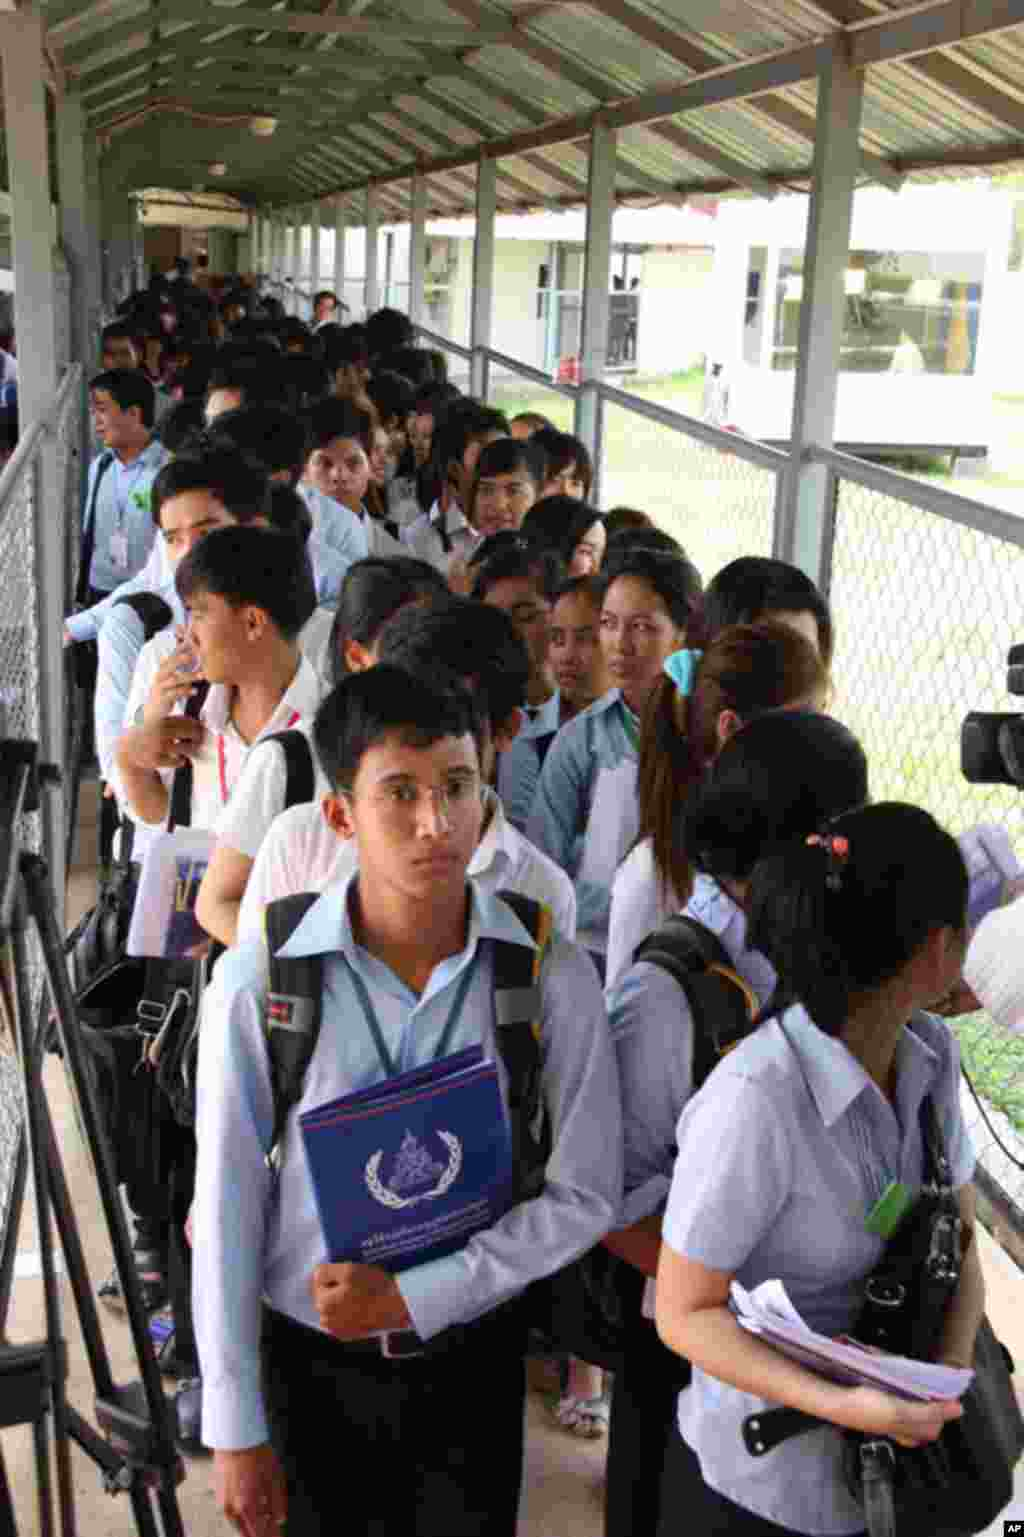 Cambodian Students Lined Up to Attend Khmer Rouge Trial, Phnom Penh, June 27, 2011